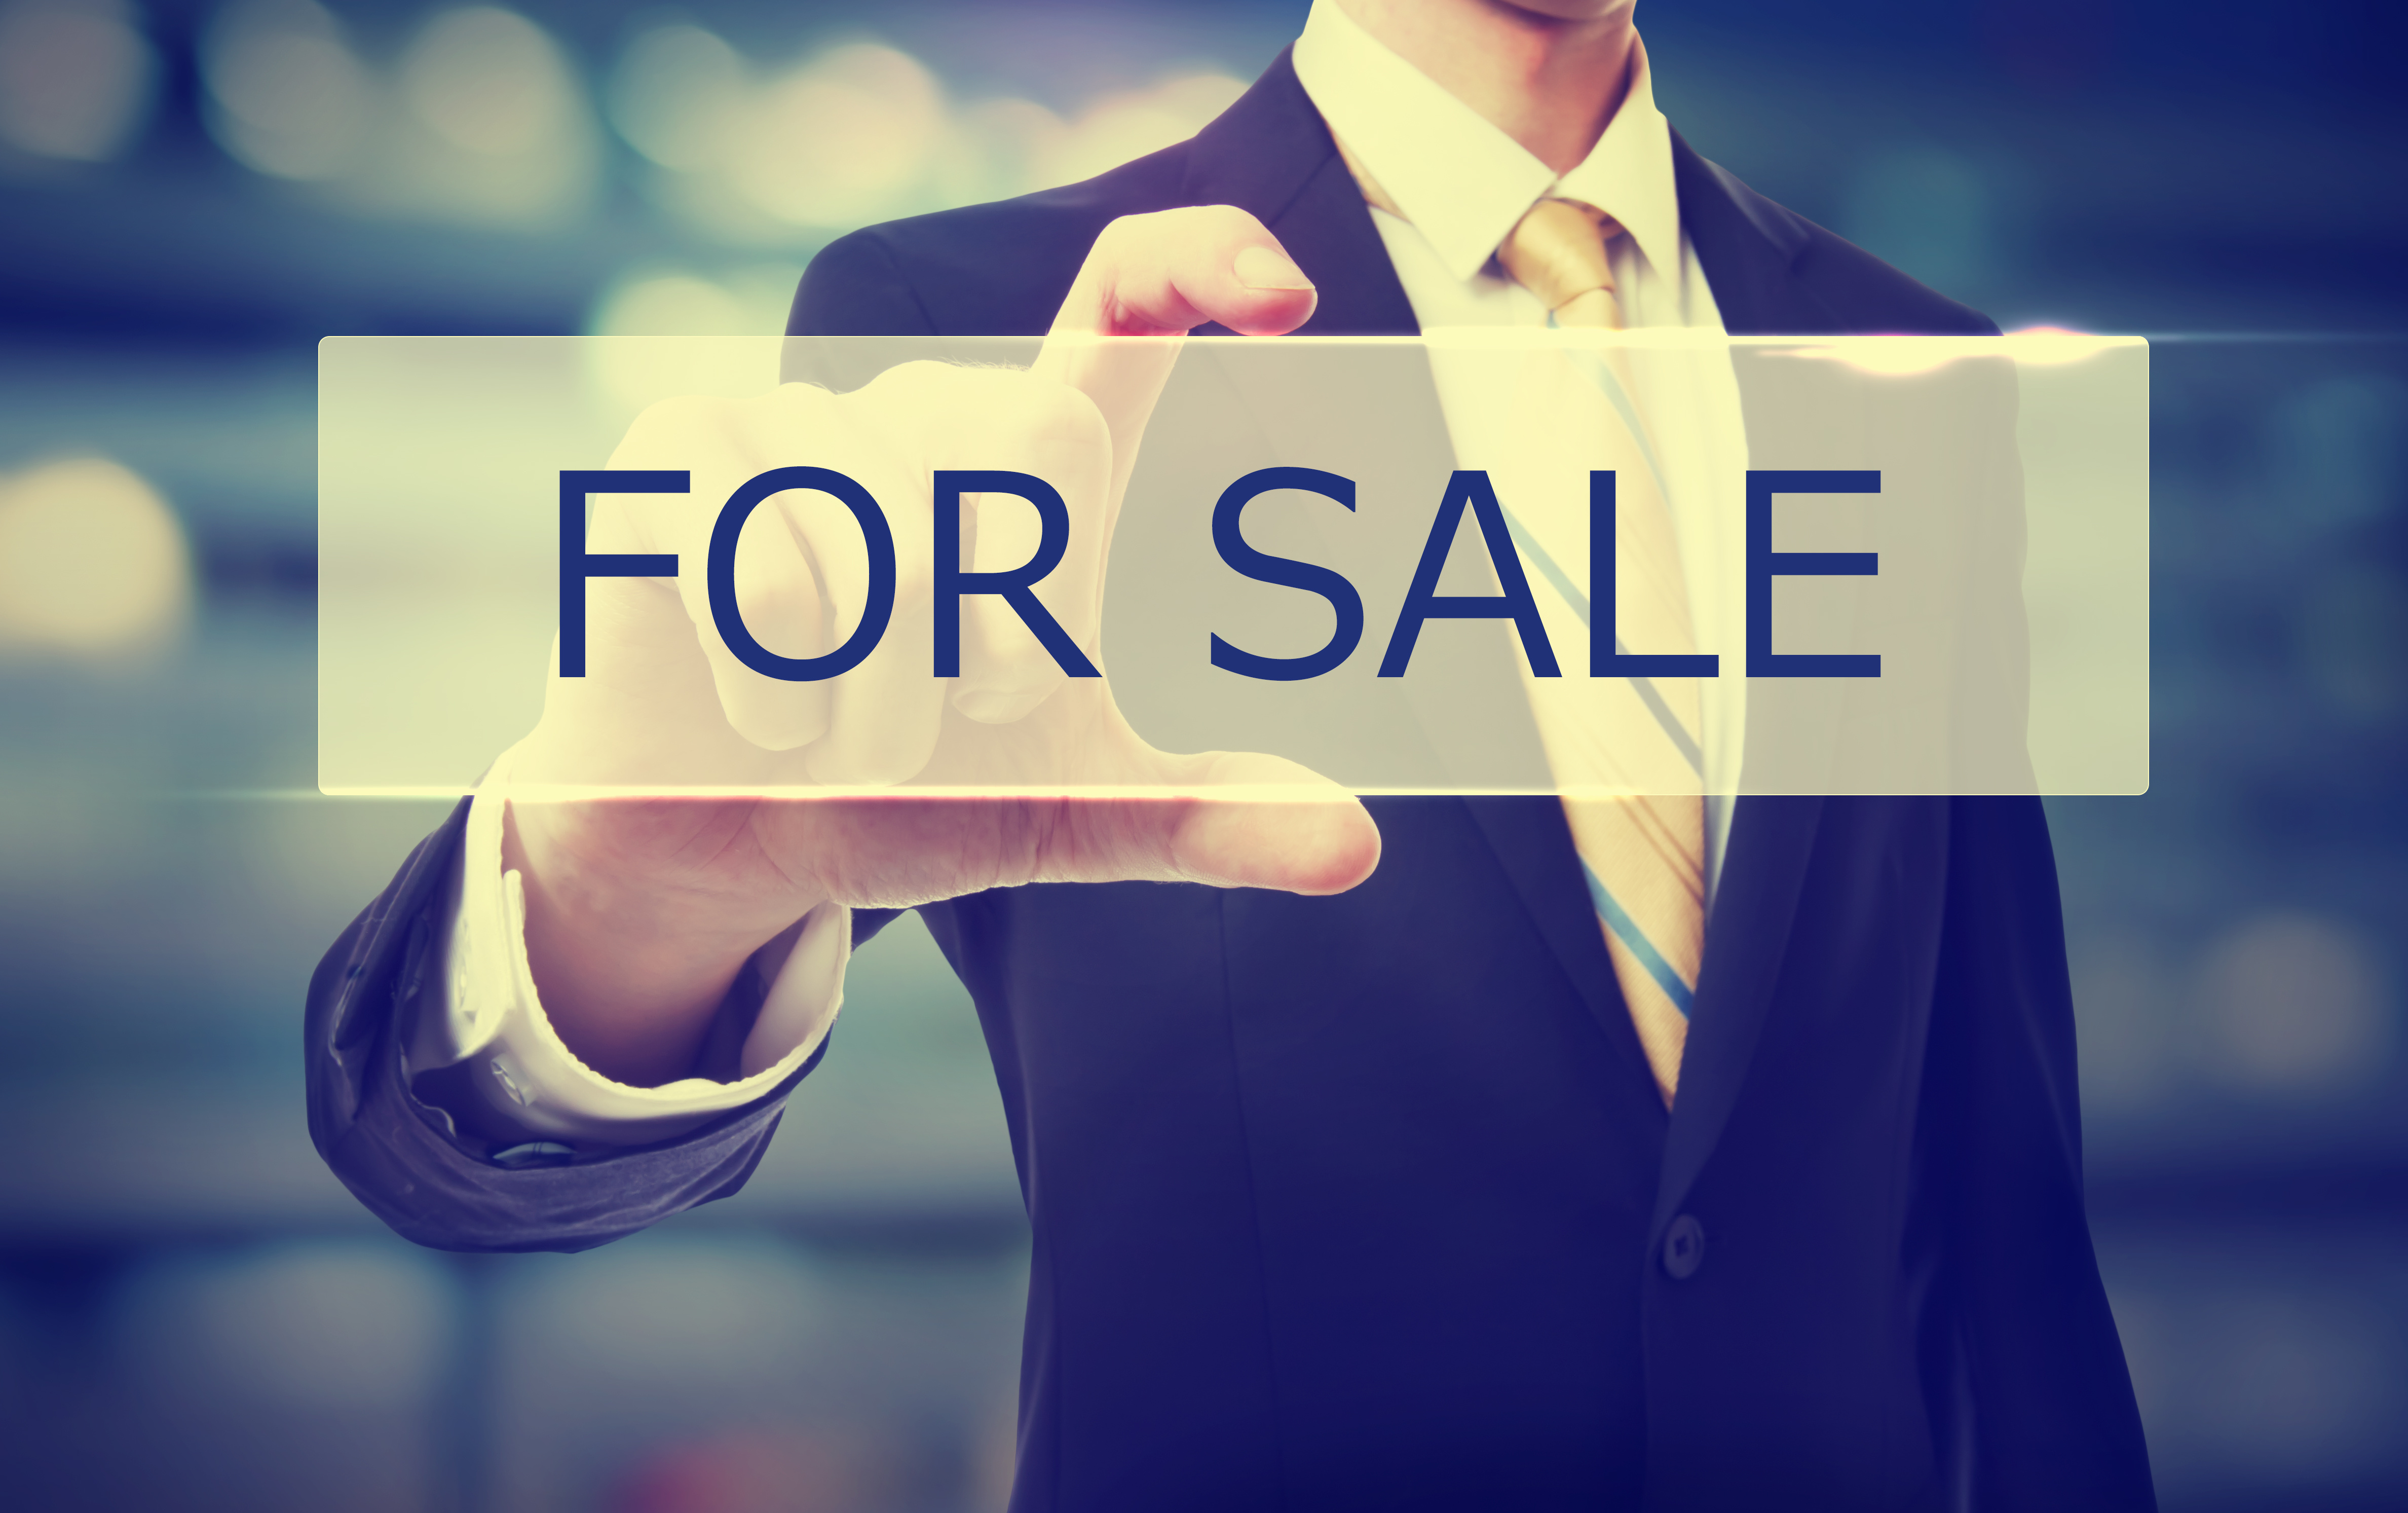 WHEN SHOULD A BUSINESS OWNER THINK ABOUT SELLING THEIR BUSINESS?